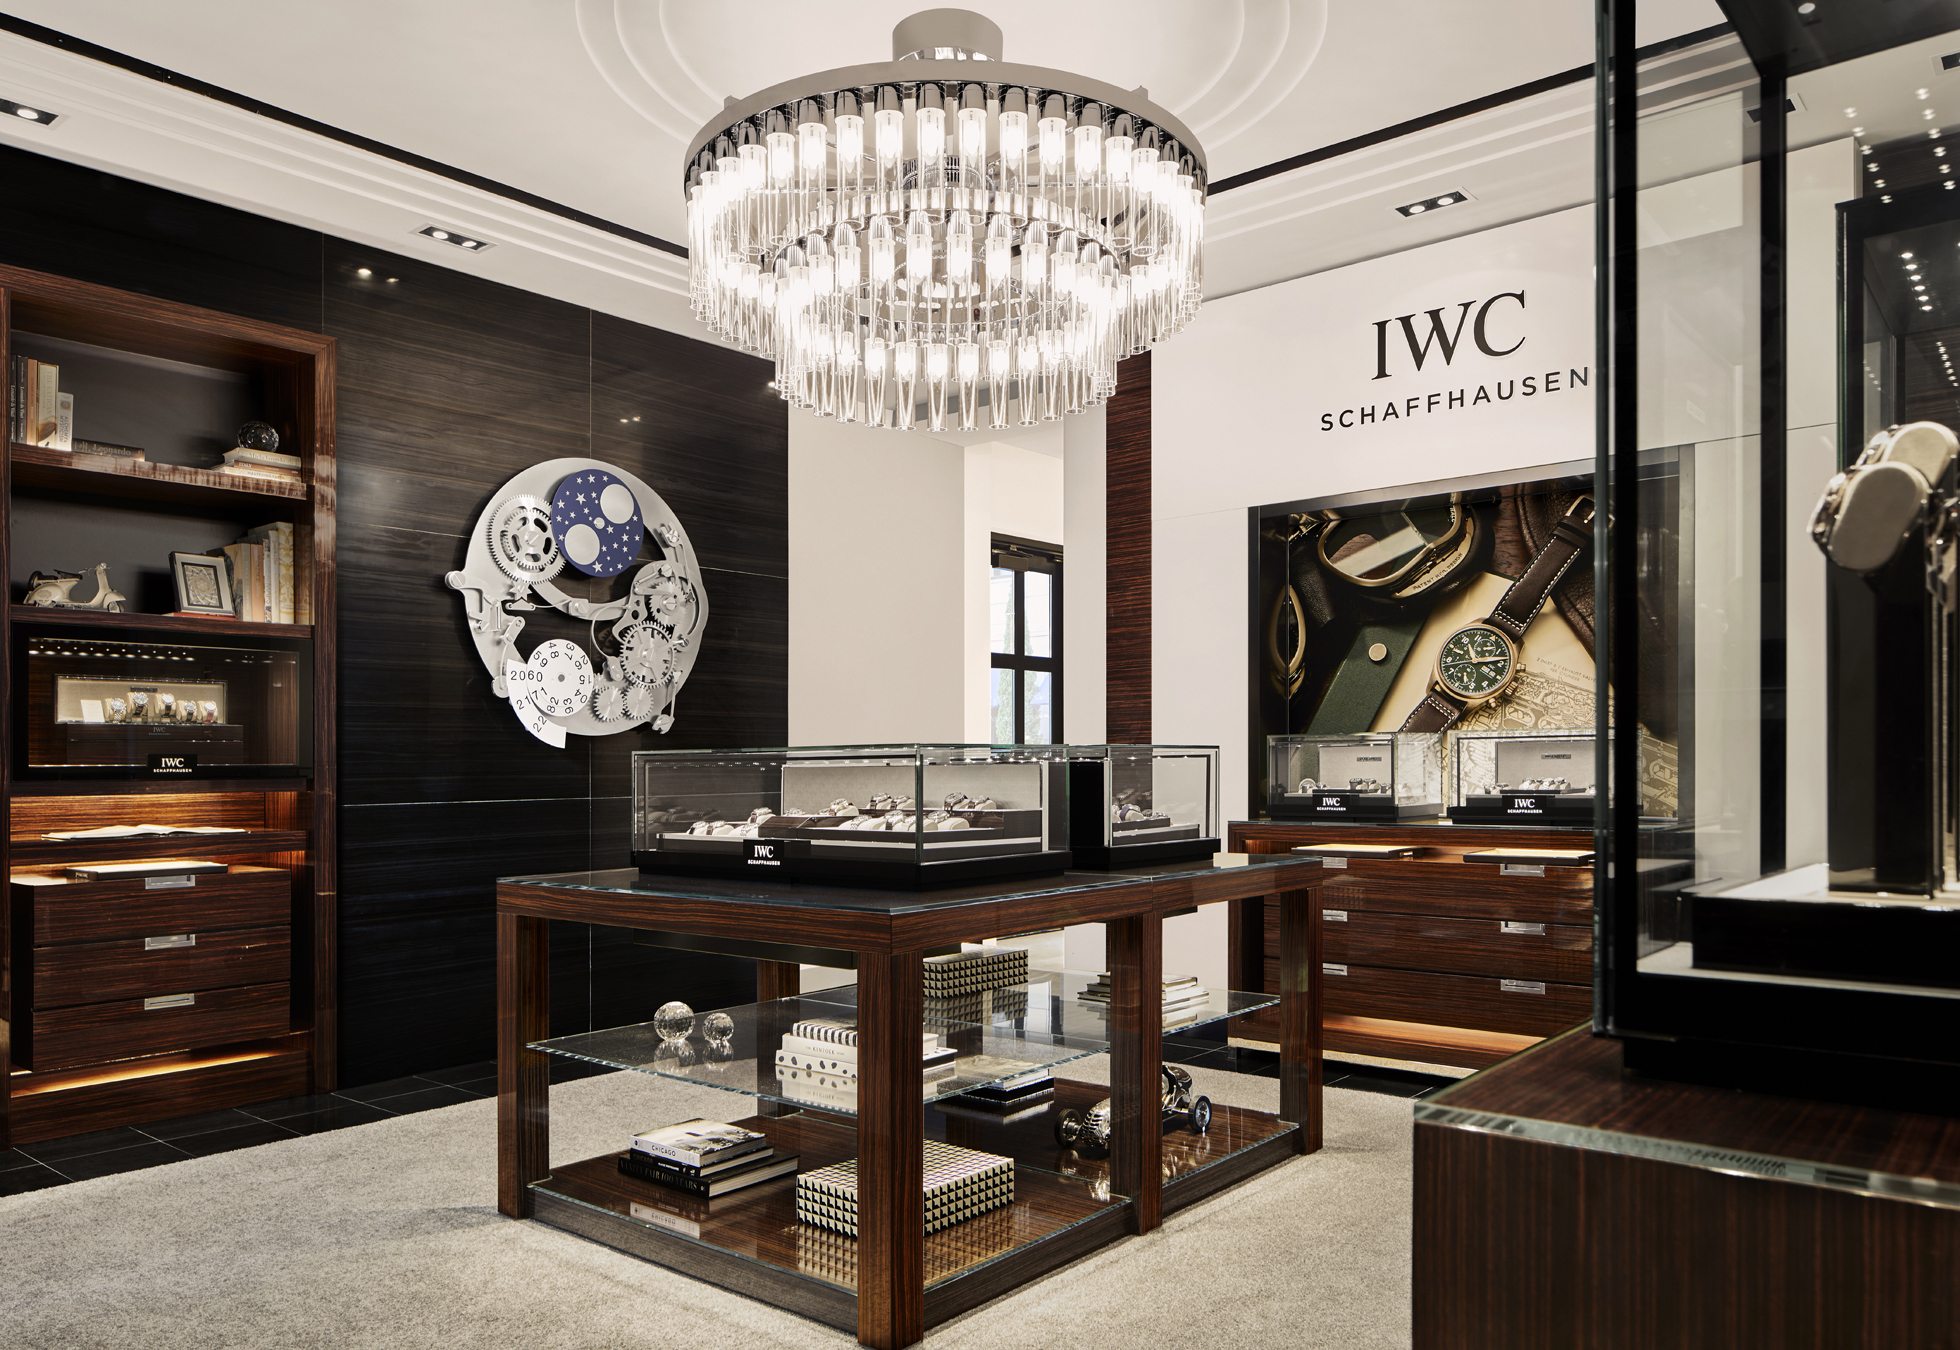 IWC's new Chicago boutique in the Waldorf Astoria hotel